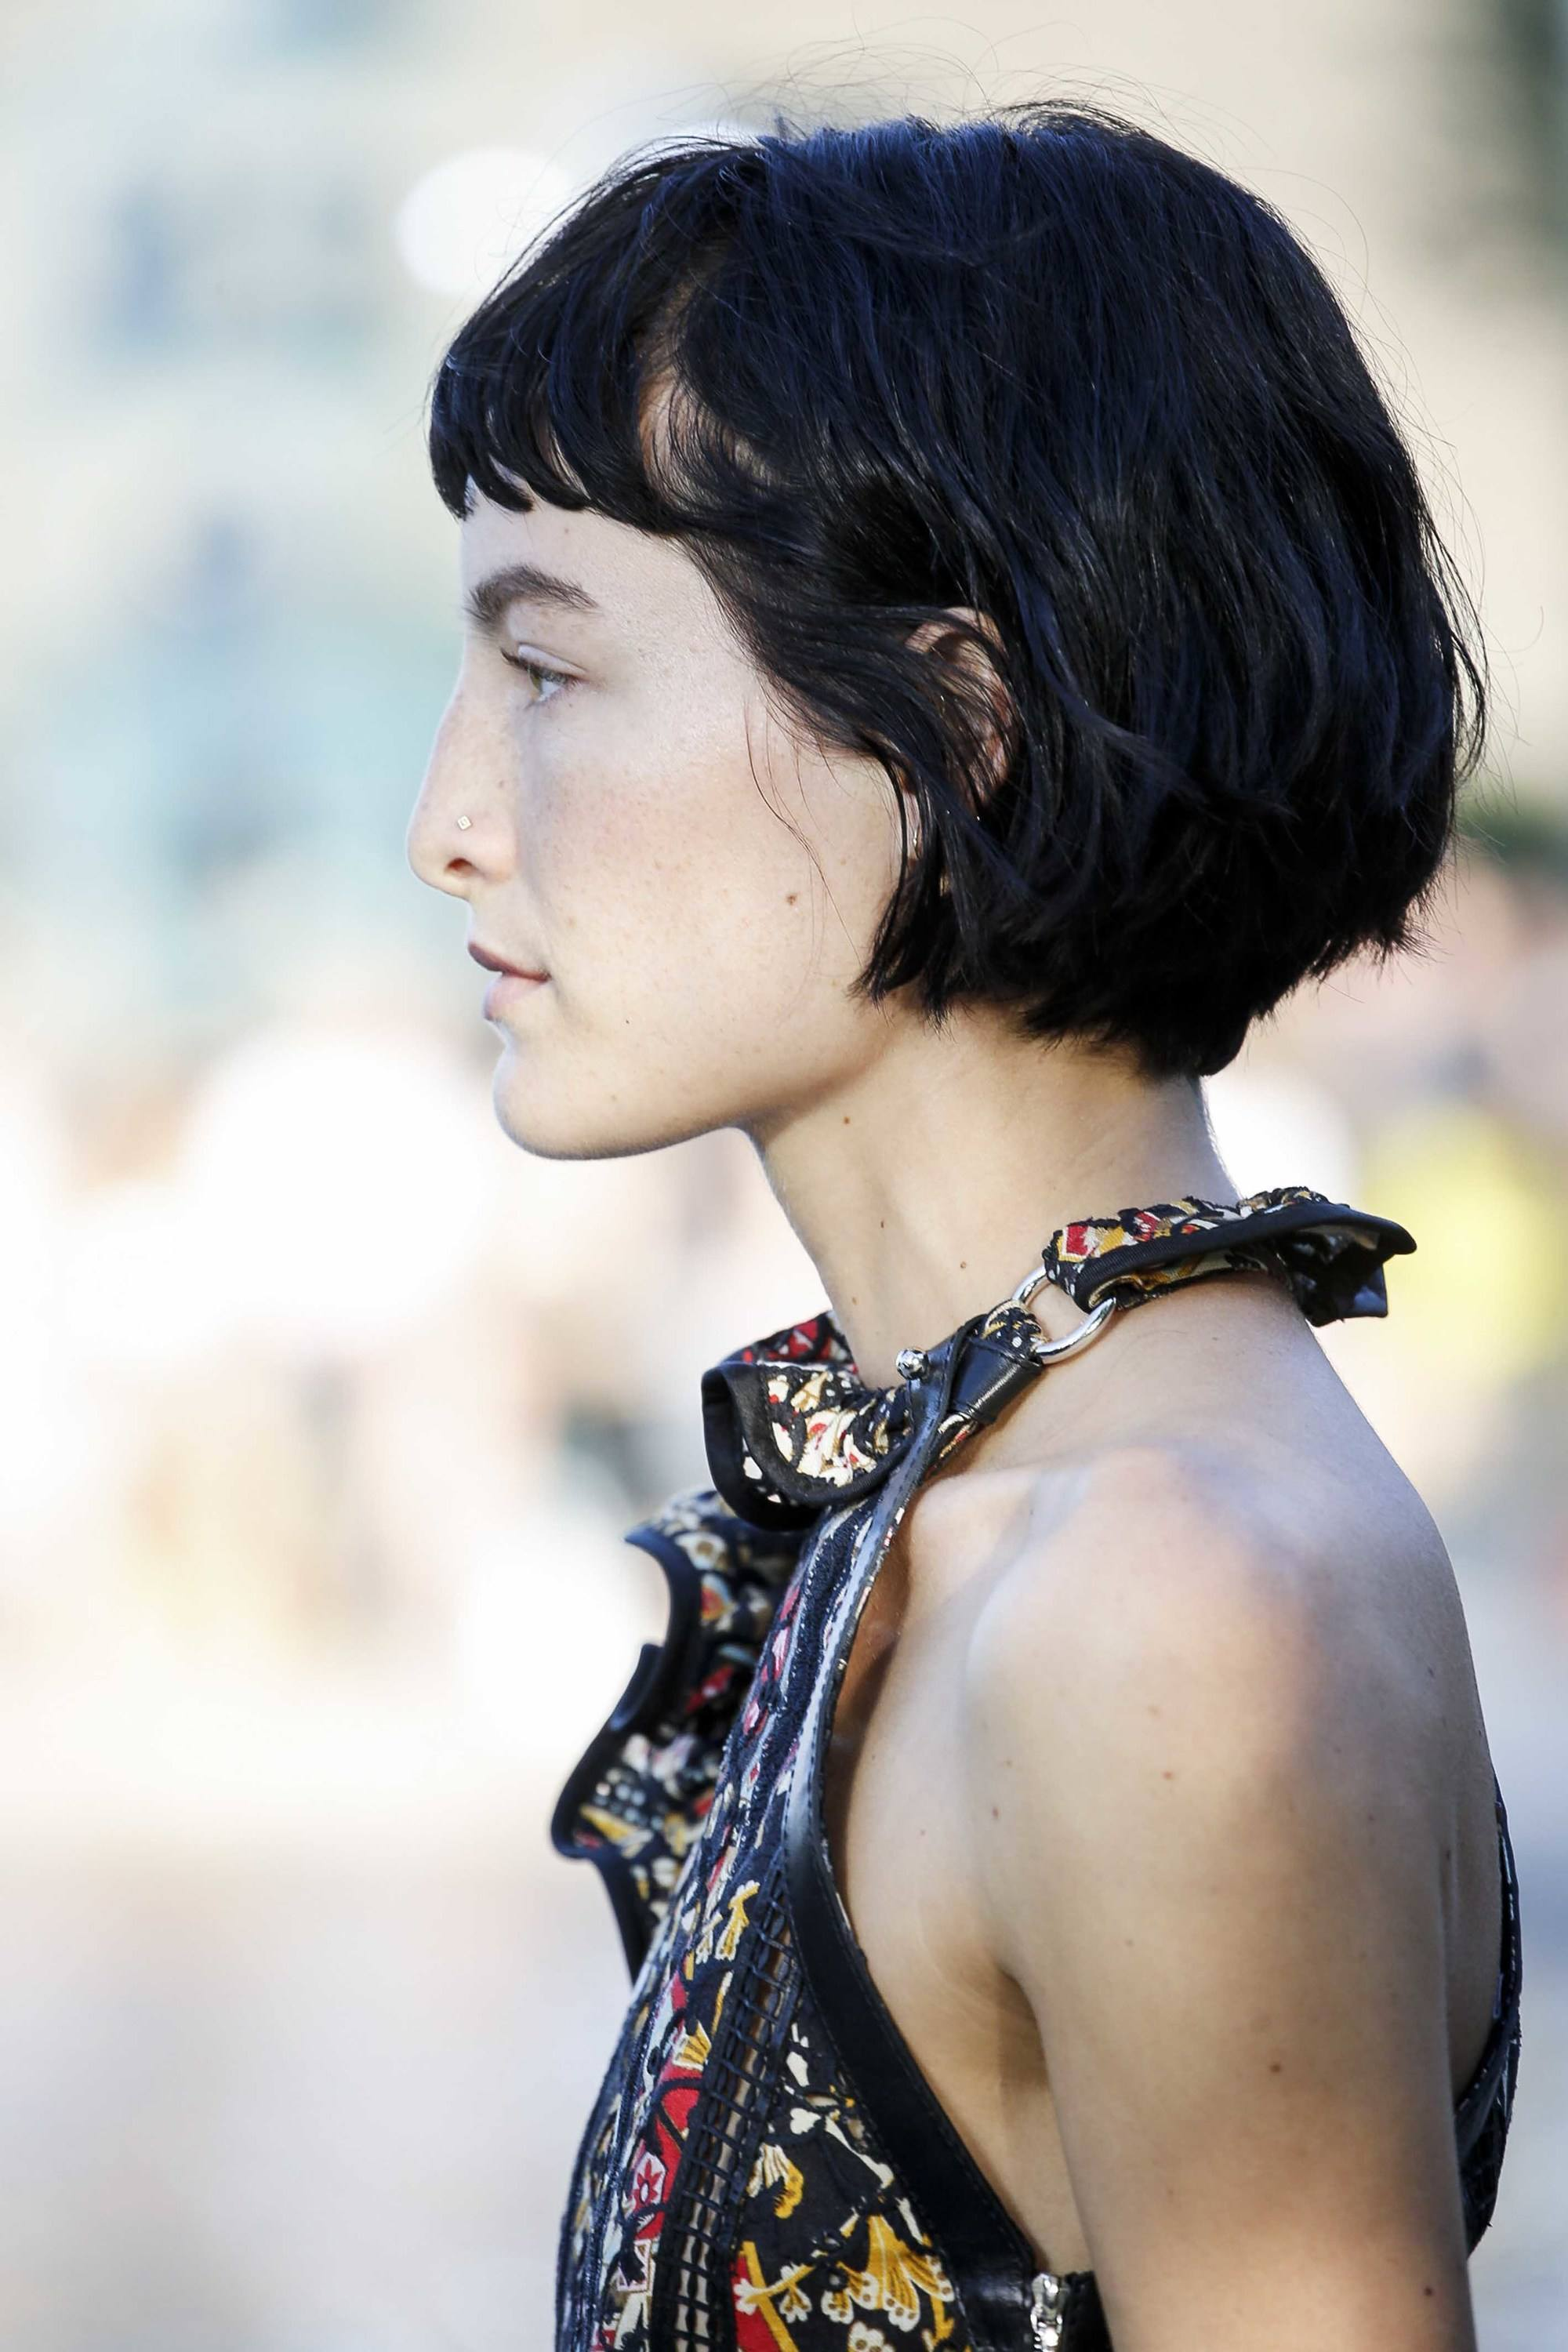 Stacked Haircuts: 5 Stylish Ways to Wear the Look